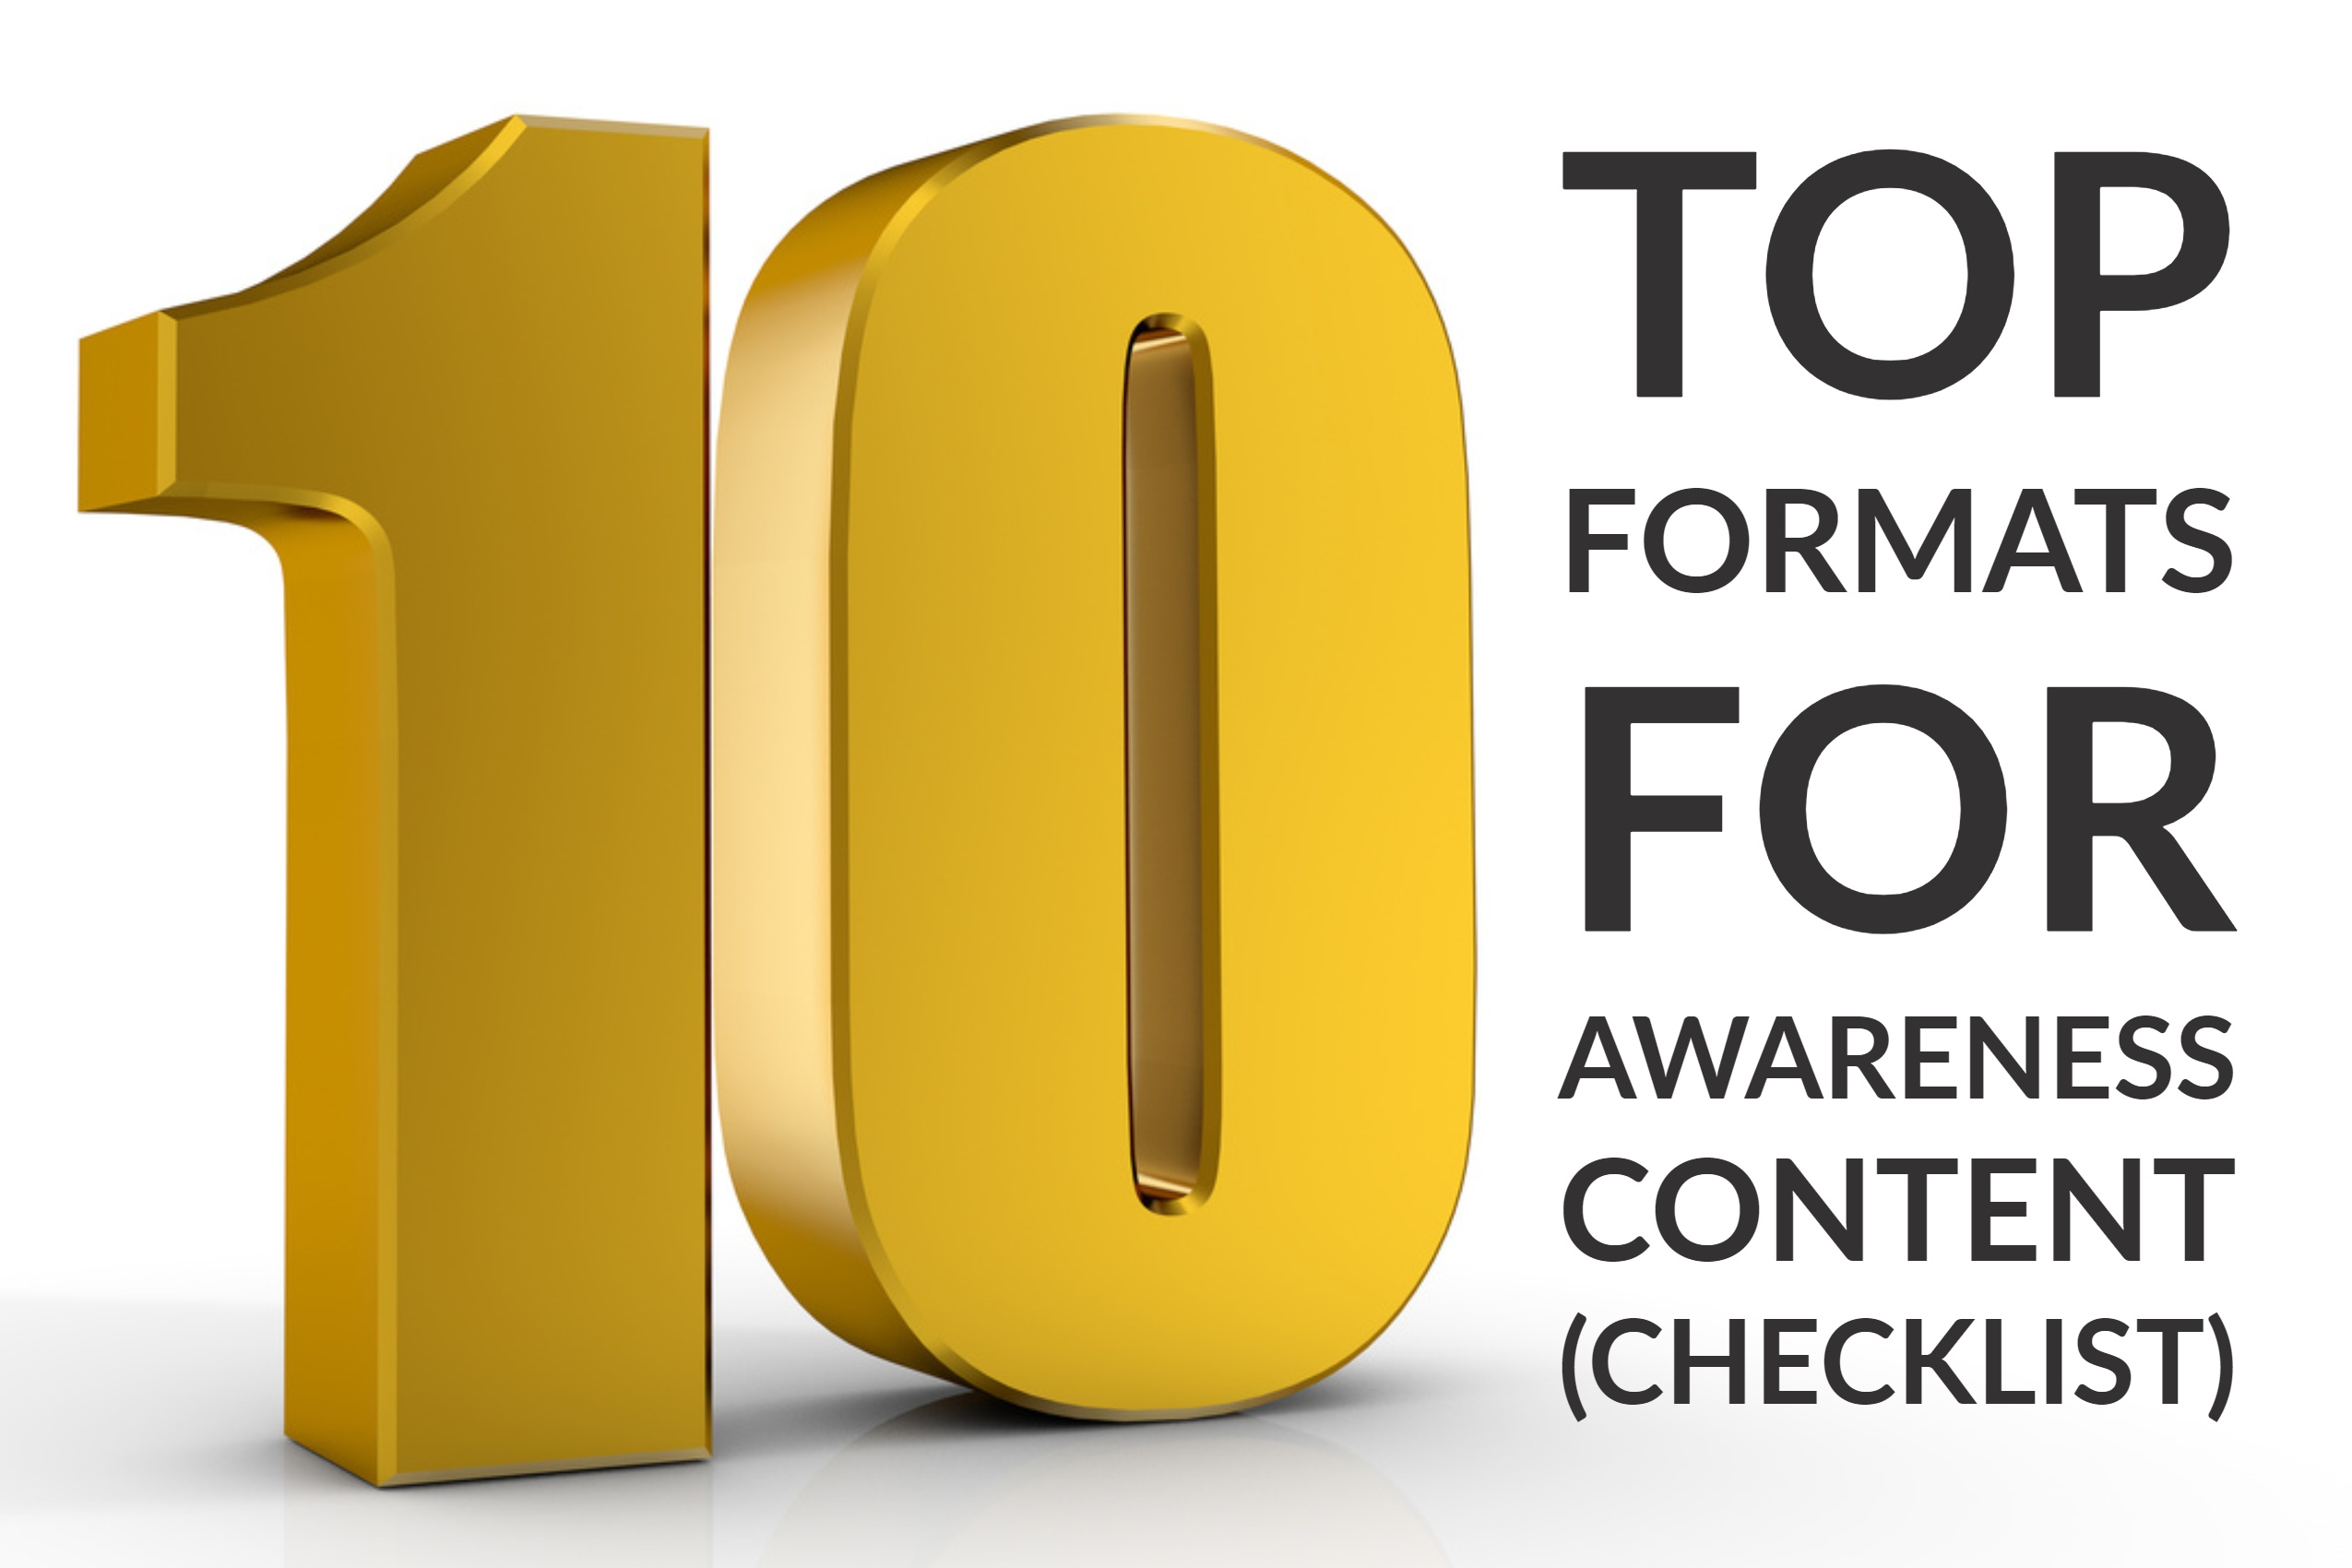 10 Top Formats for Awareness Content (checklist)